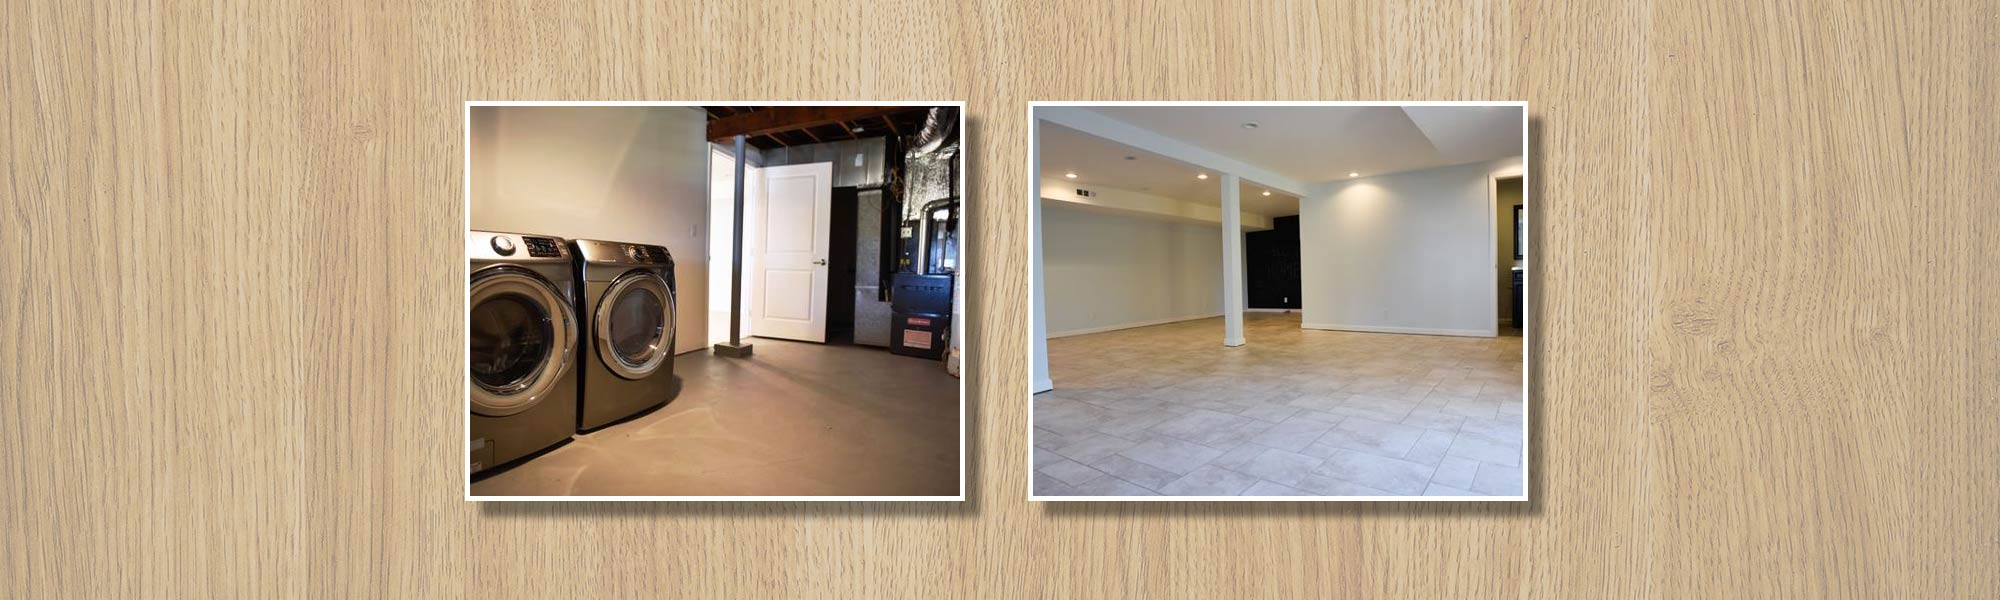 Basement Remodeling Contractors in Elmsford, NY